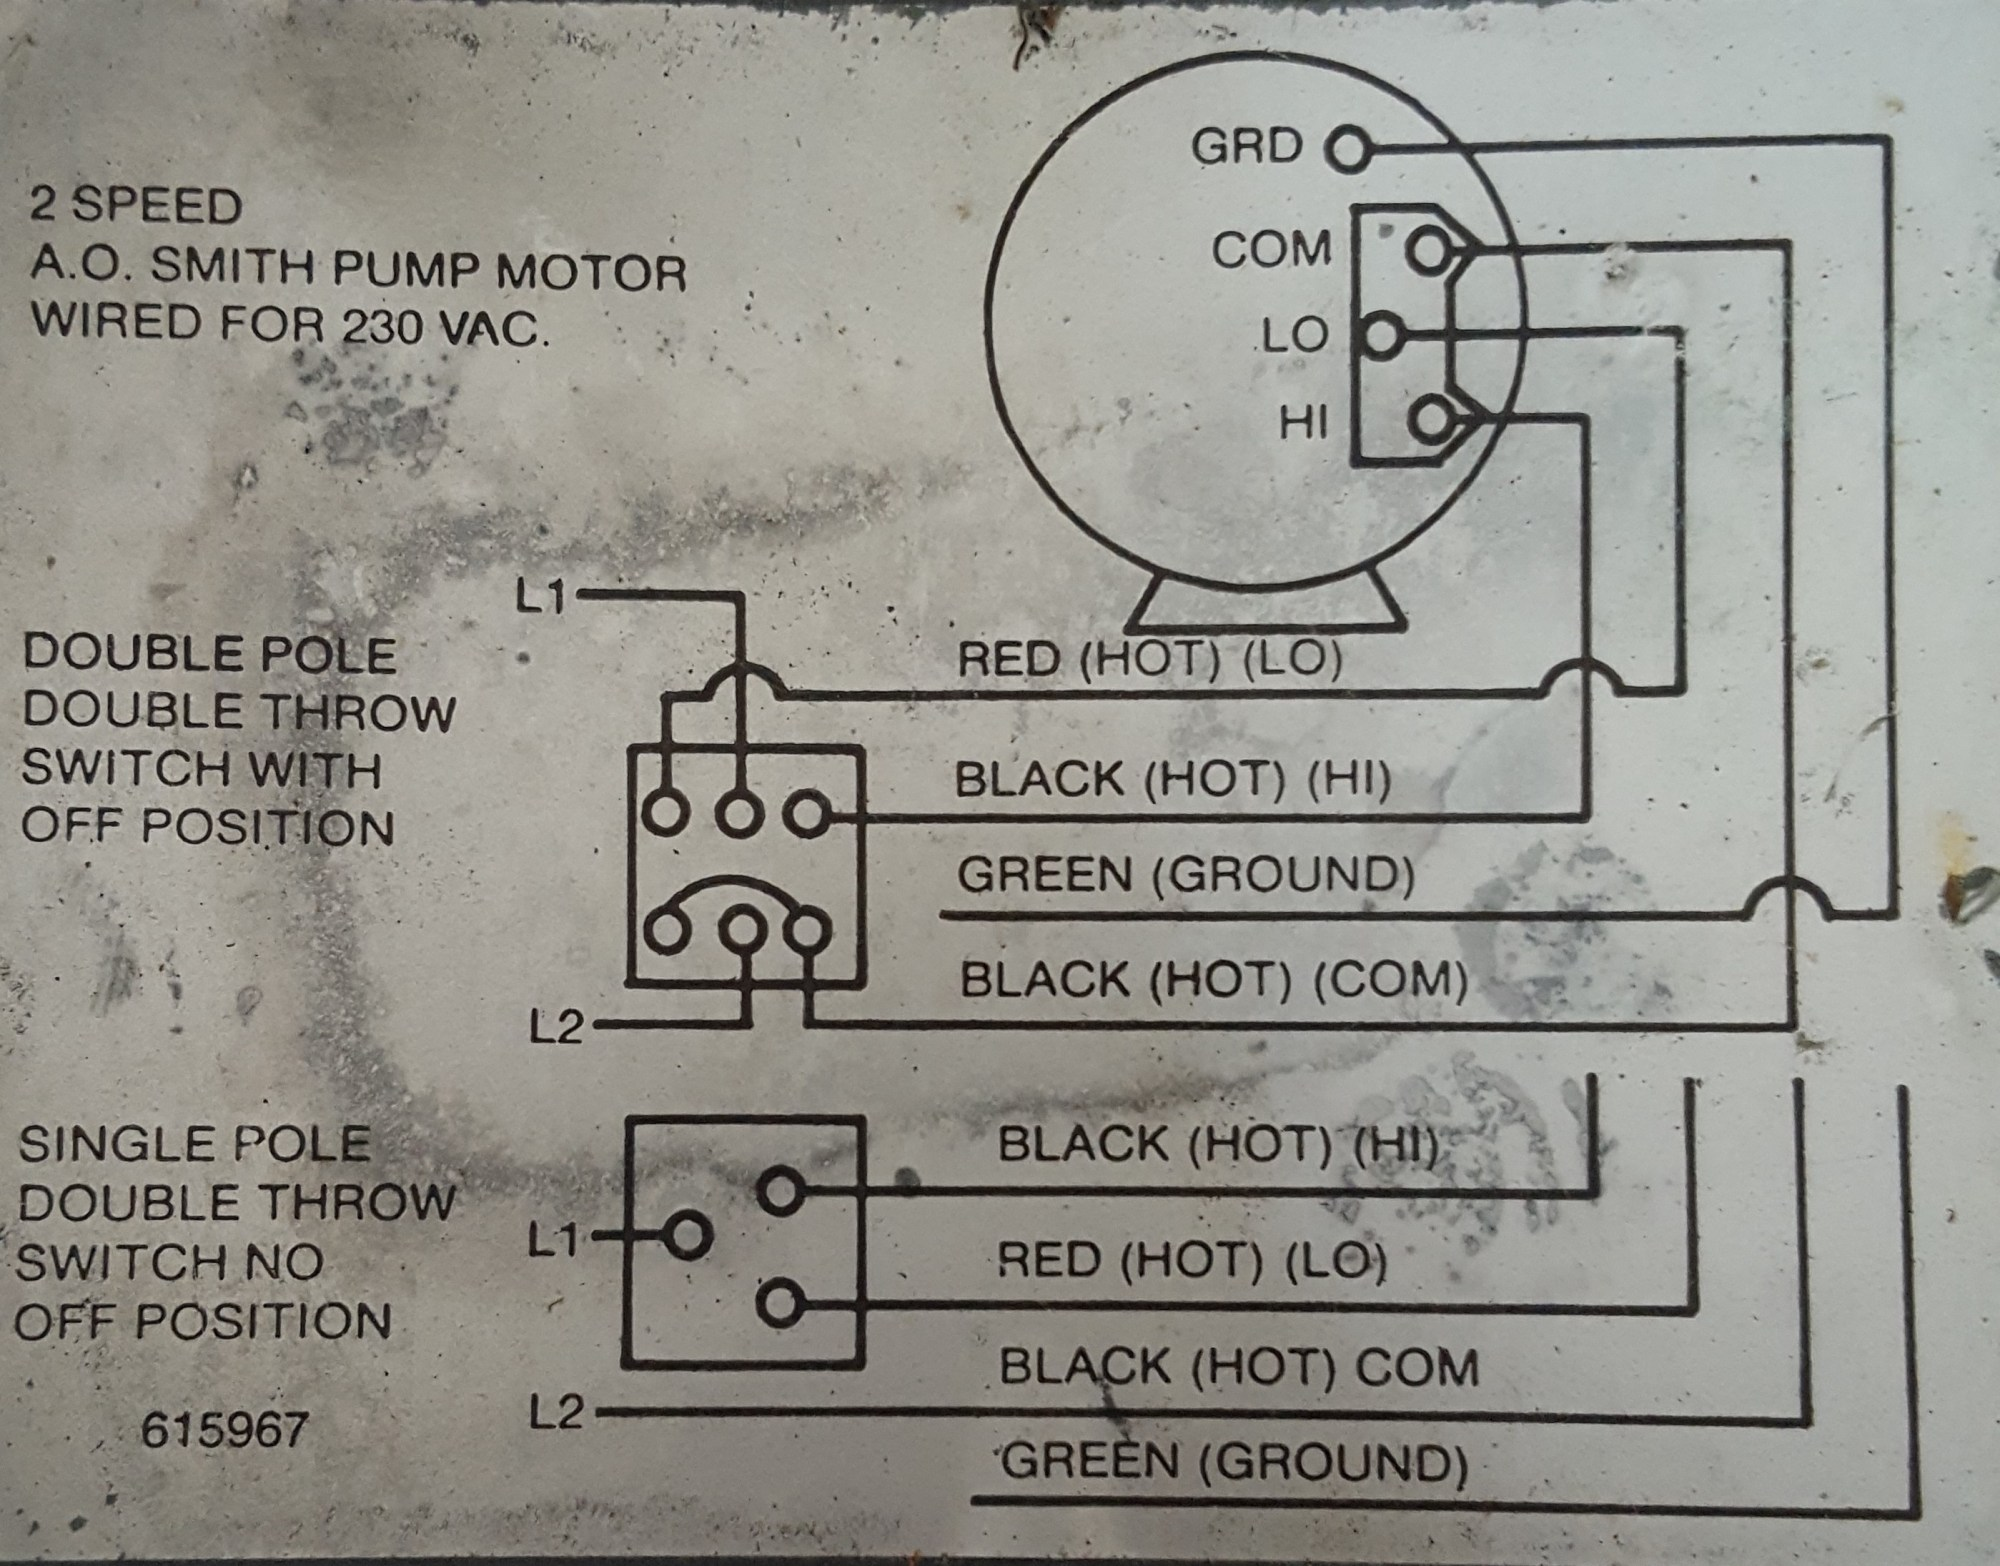 hight resolution of forgot to include the wiring diagram